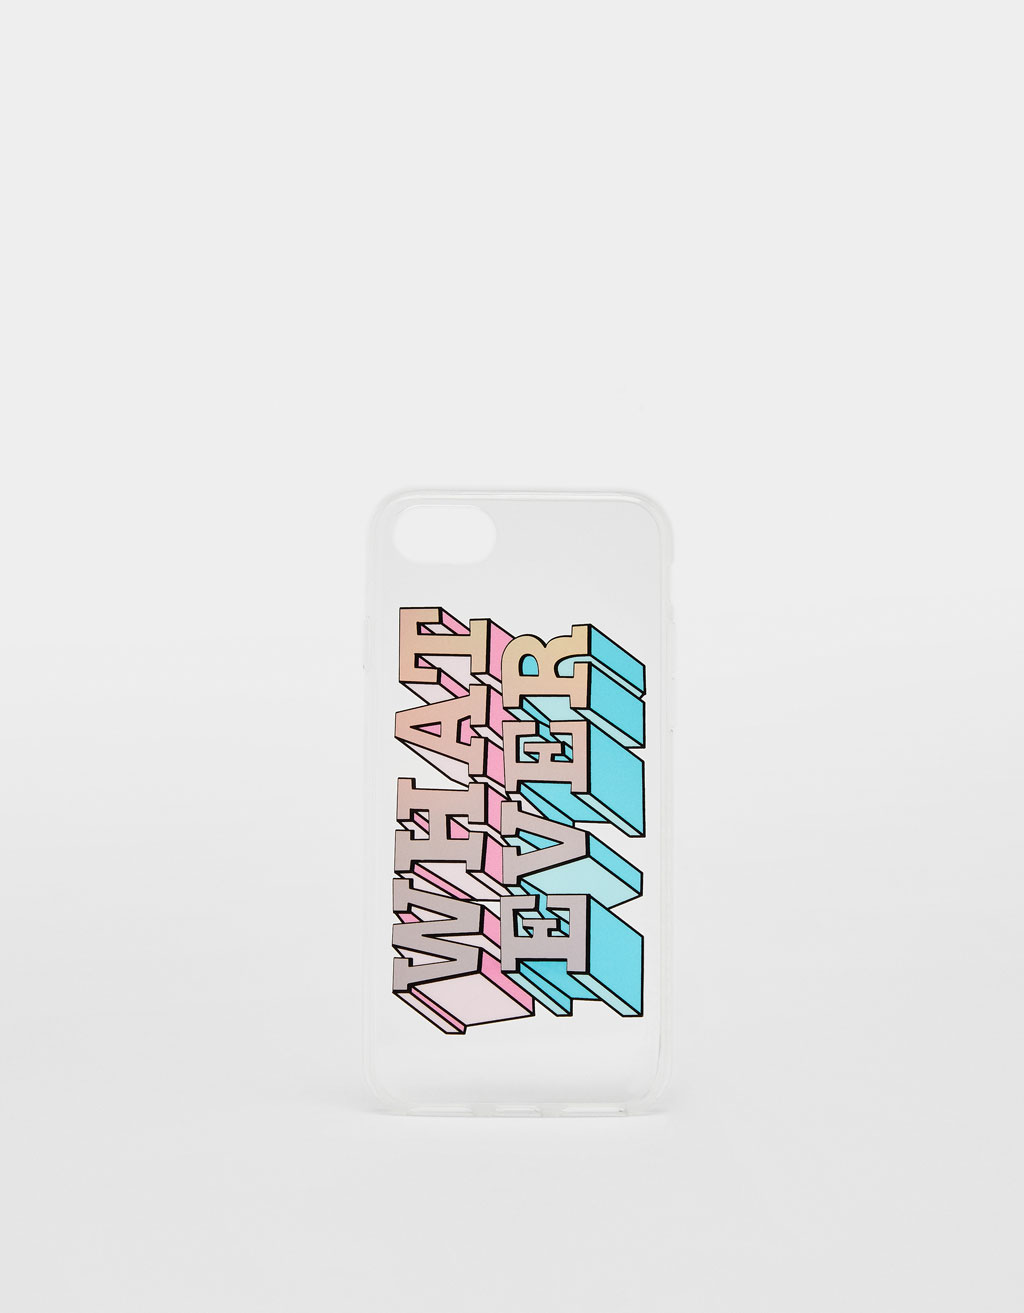 'Whatever' iPhone 6 / 6S / 7 / 8 case